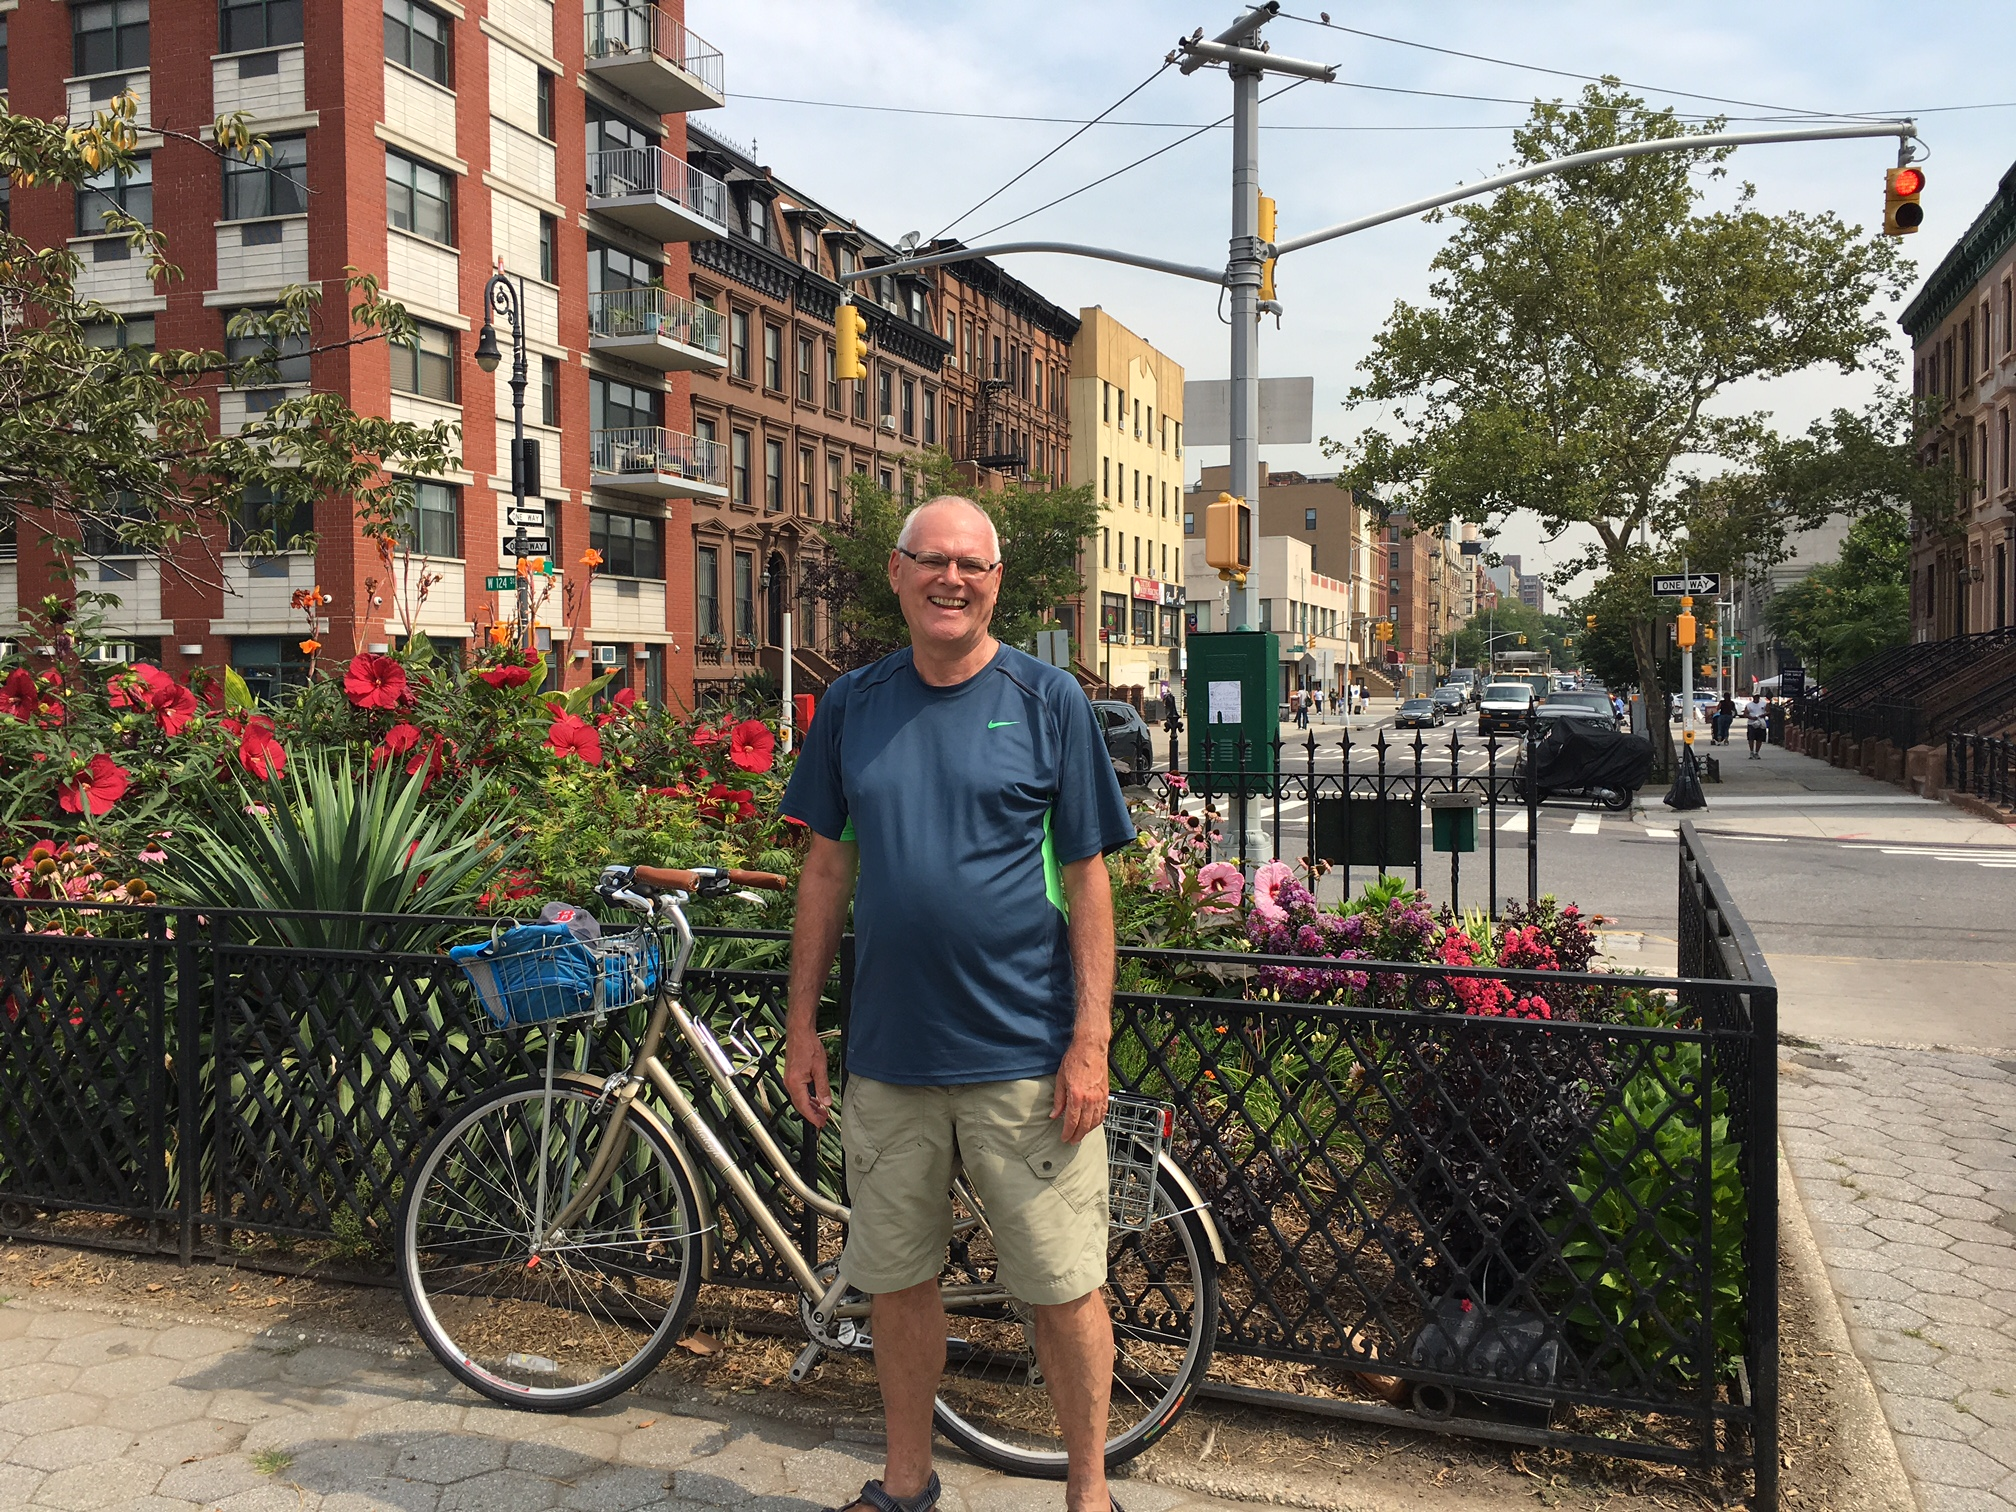 Bernd on a bicycle tour through Harlem  8-2-17